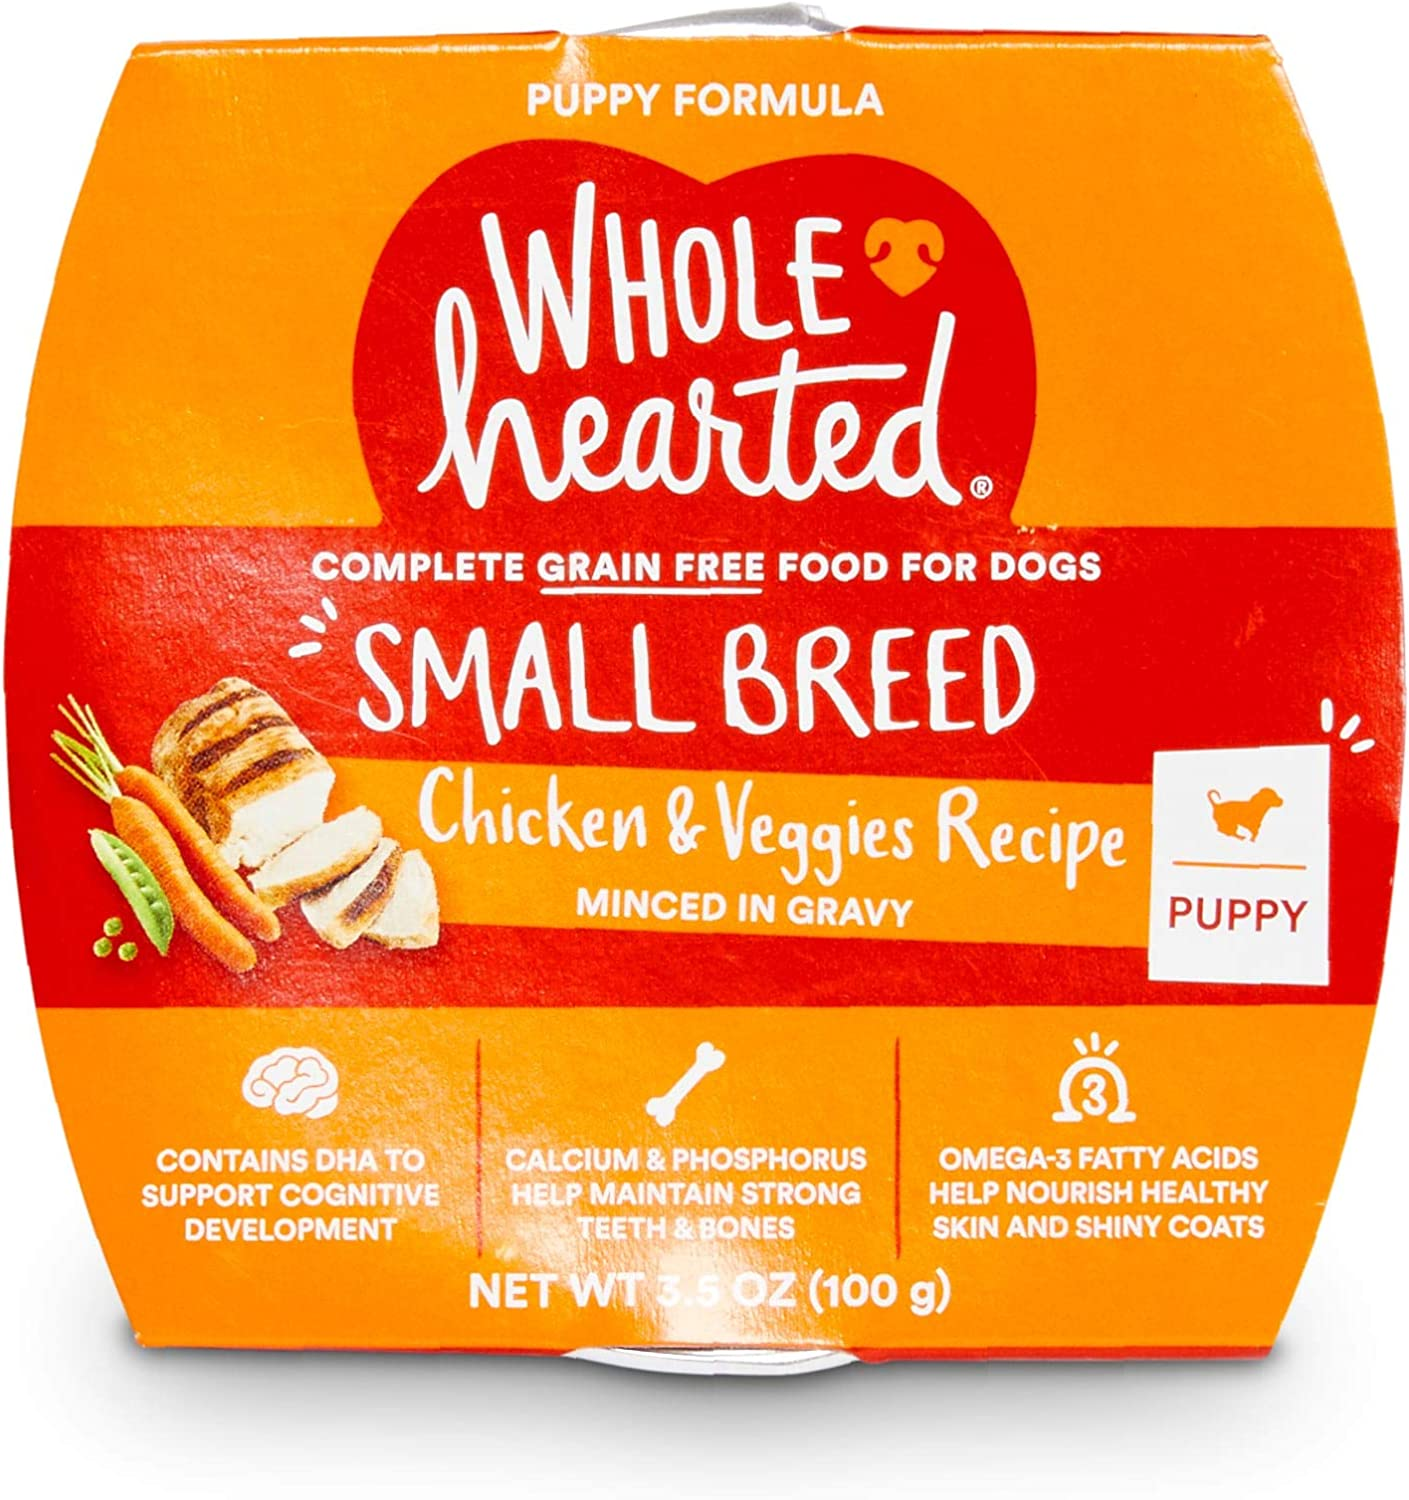 WholeHearted Grain-Free Chicken & Veggies Minced in Gravy Wet Puppy Food, 3.5 oz., Case of 8, 8 X 3.5 OZ